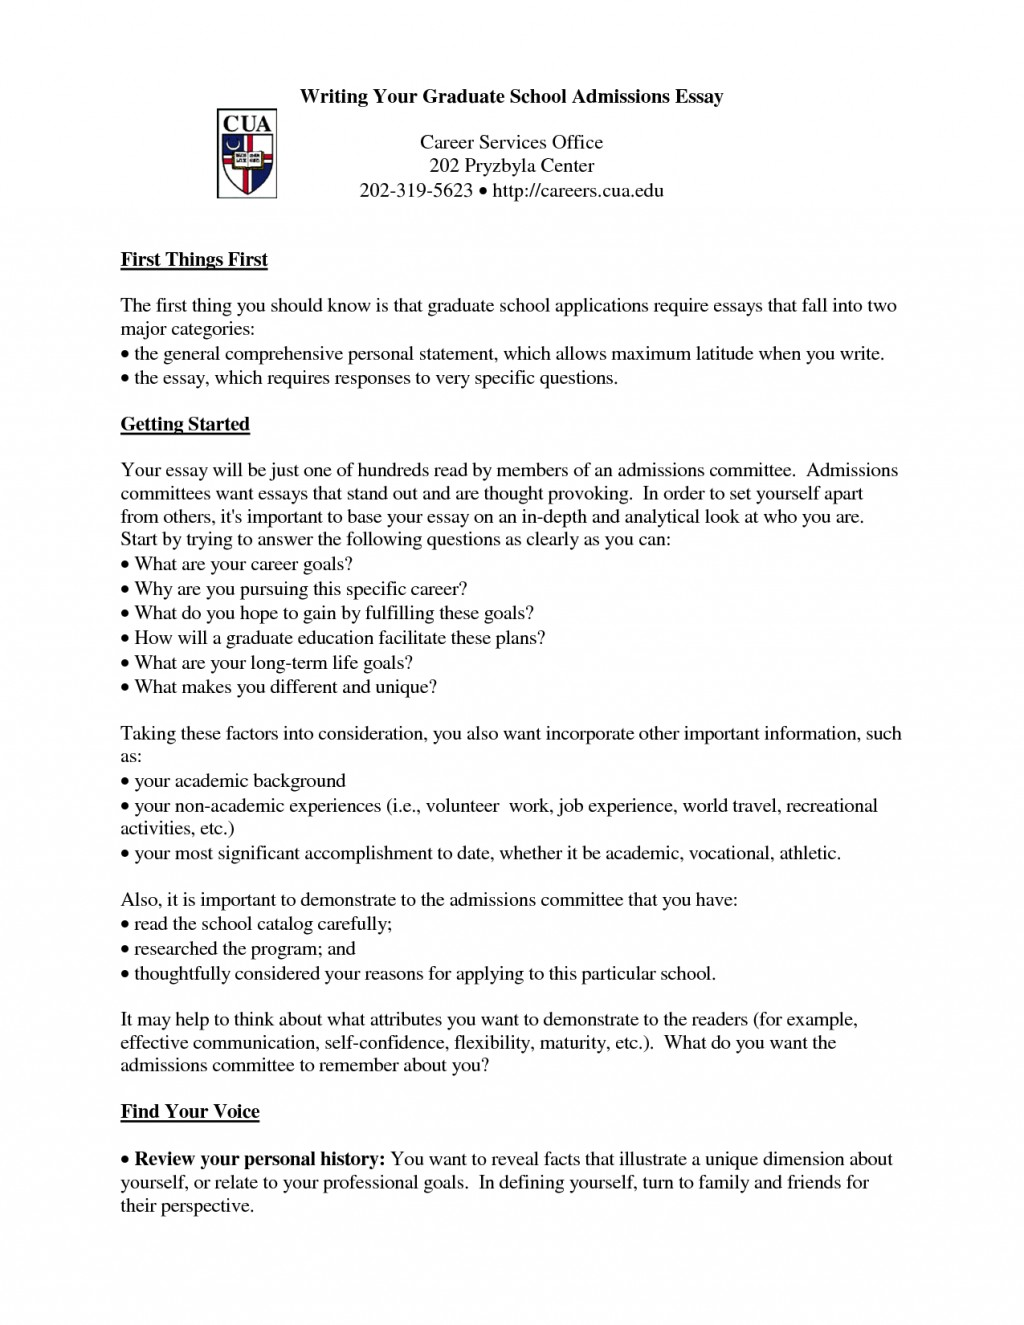 003 Essay For Master Degree Application Example Rare Sample Large